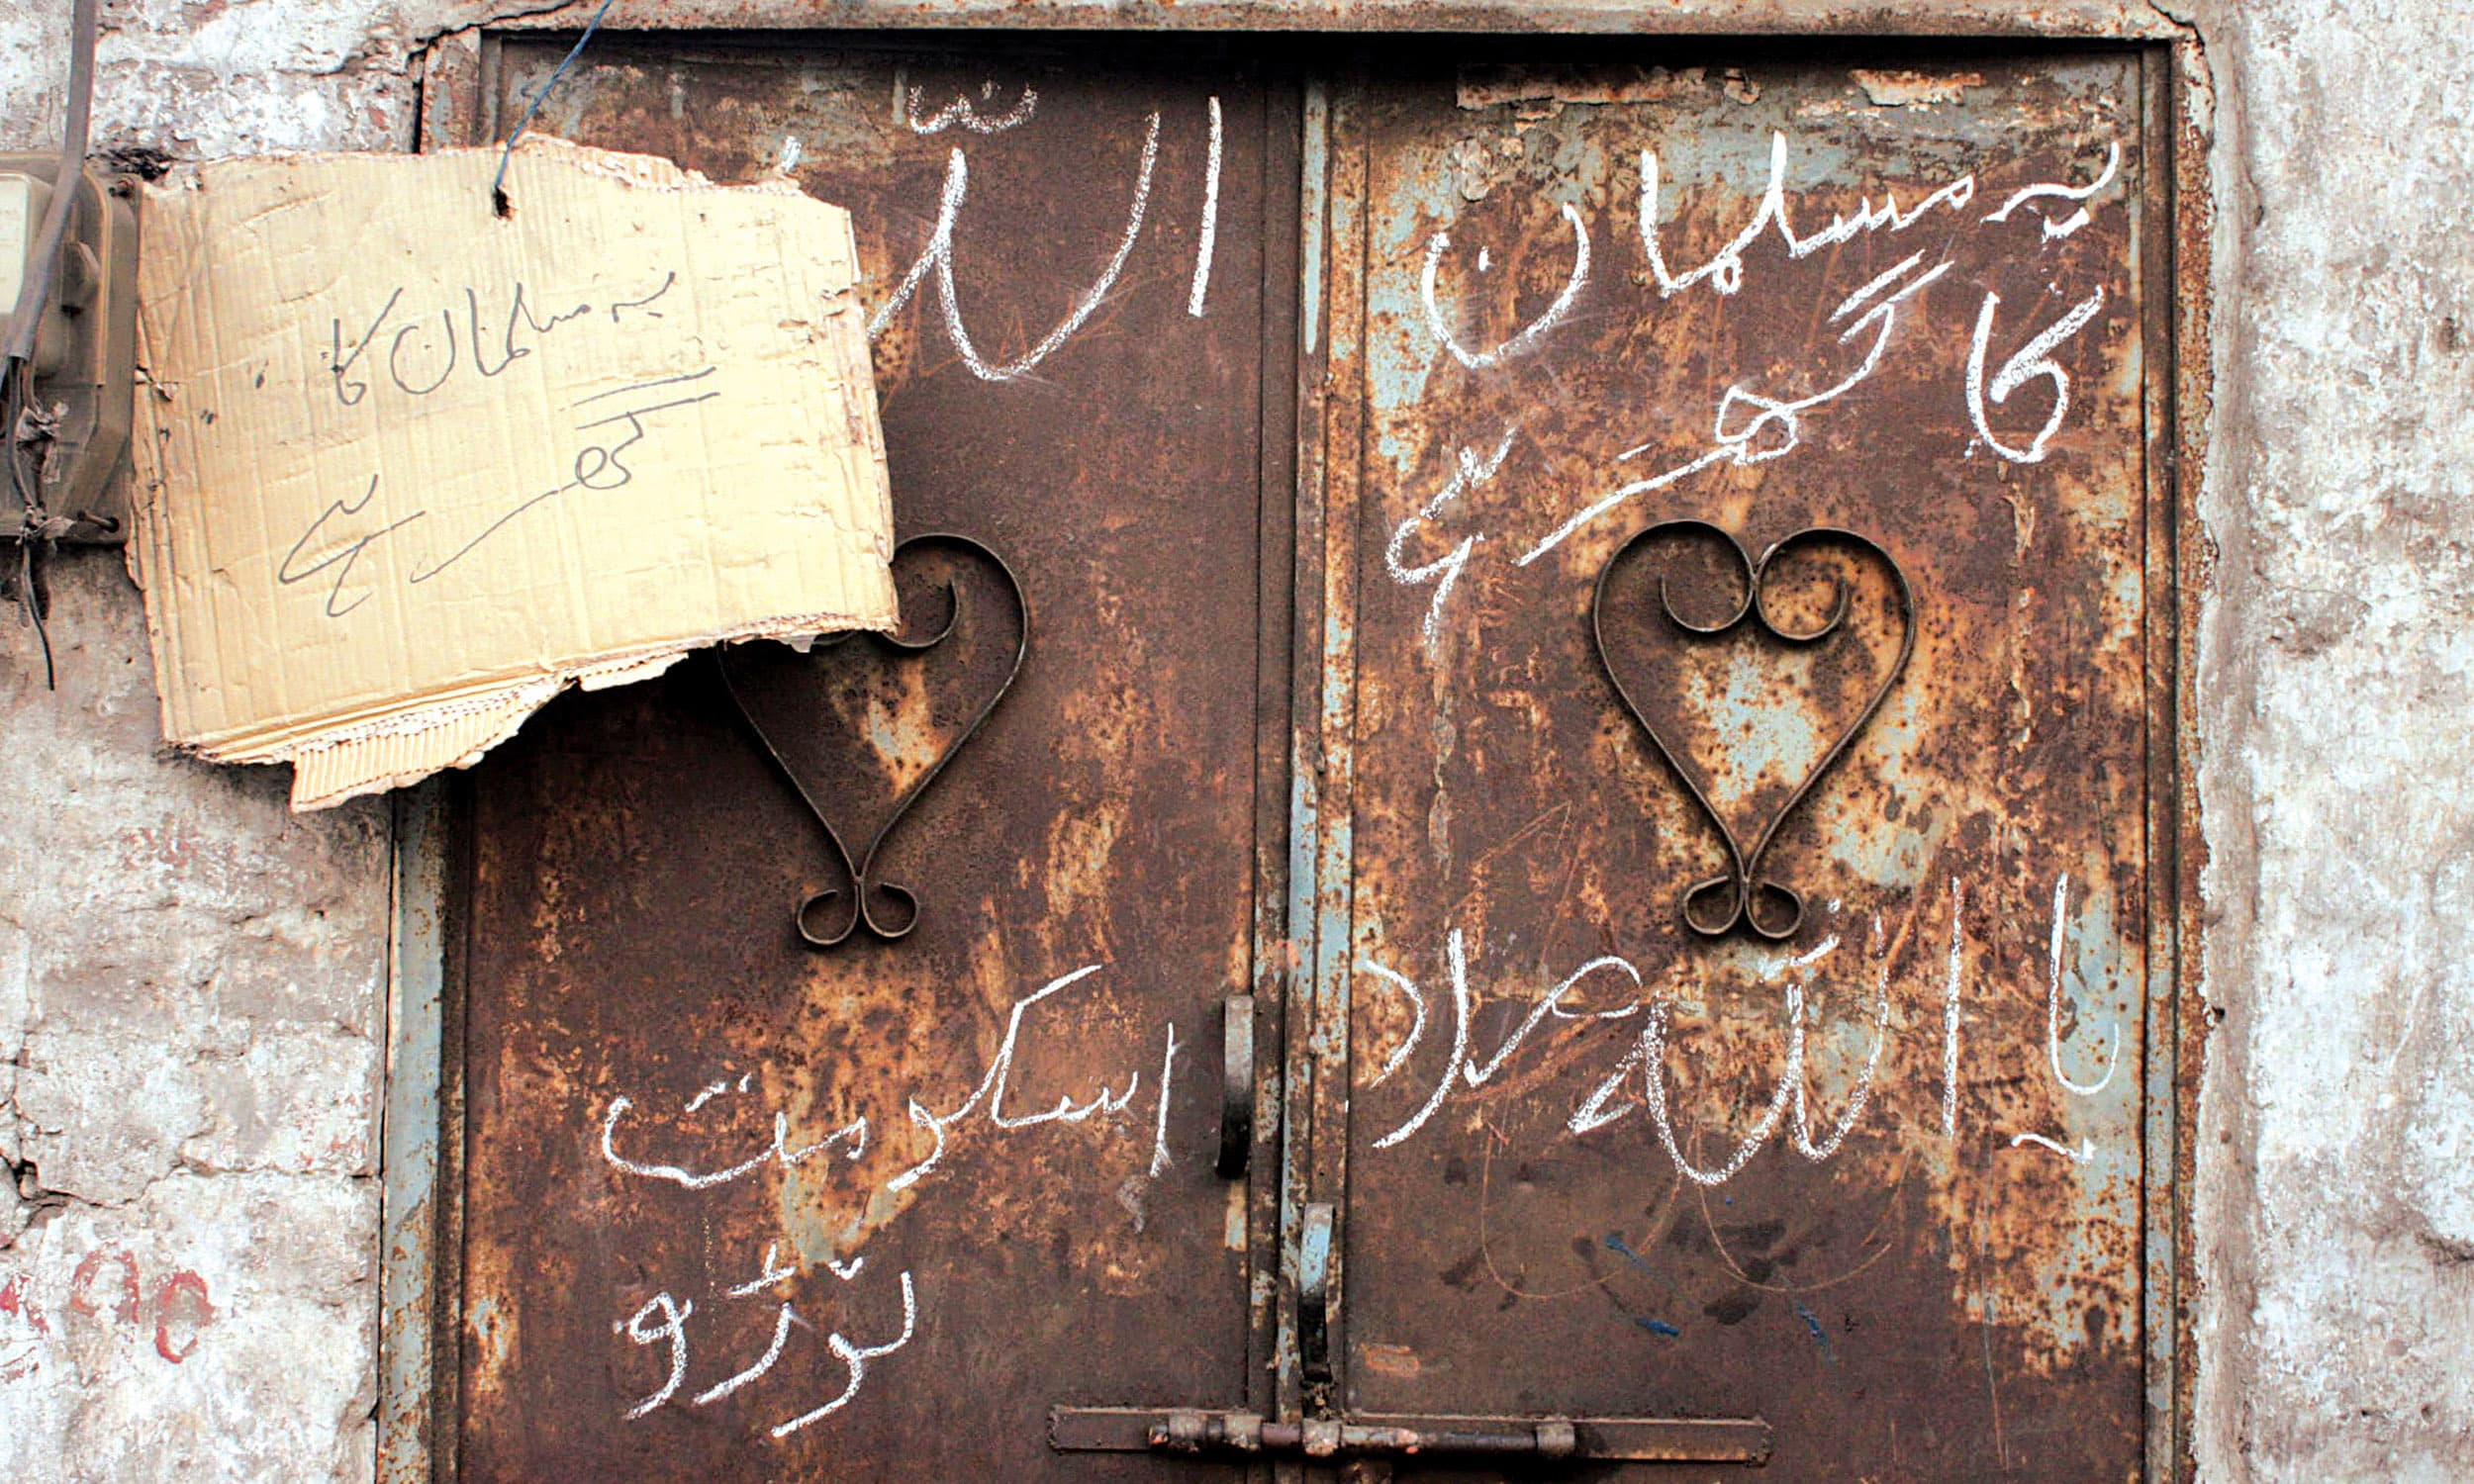 The age of faith: Religious intolerance in Pakistan